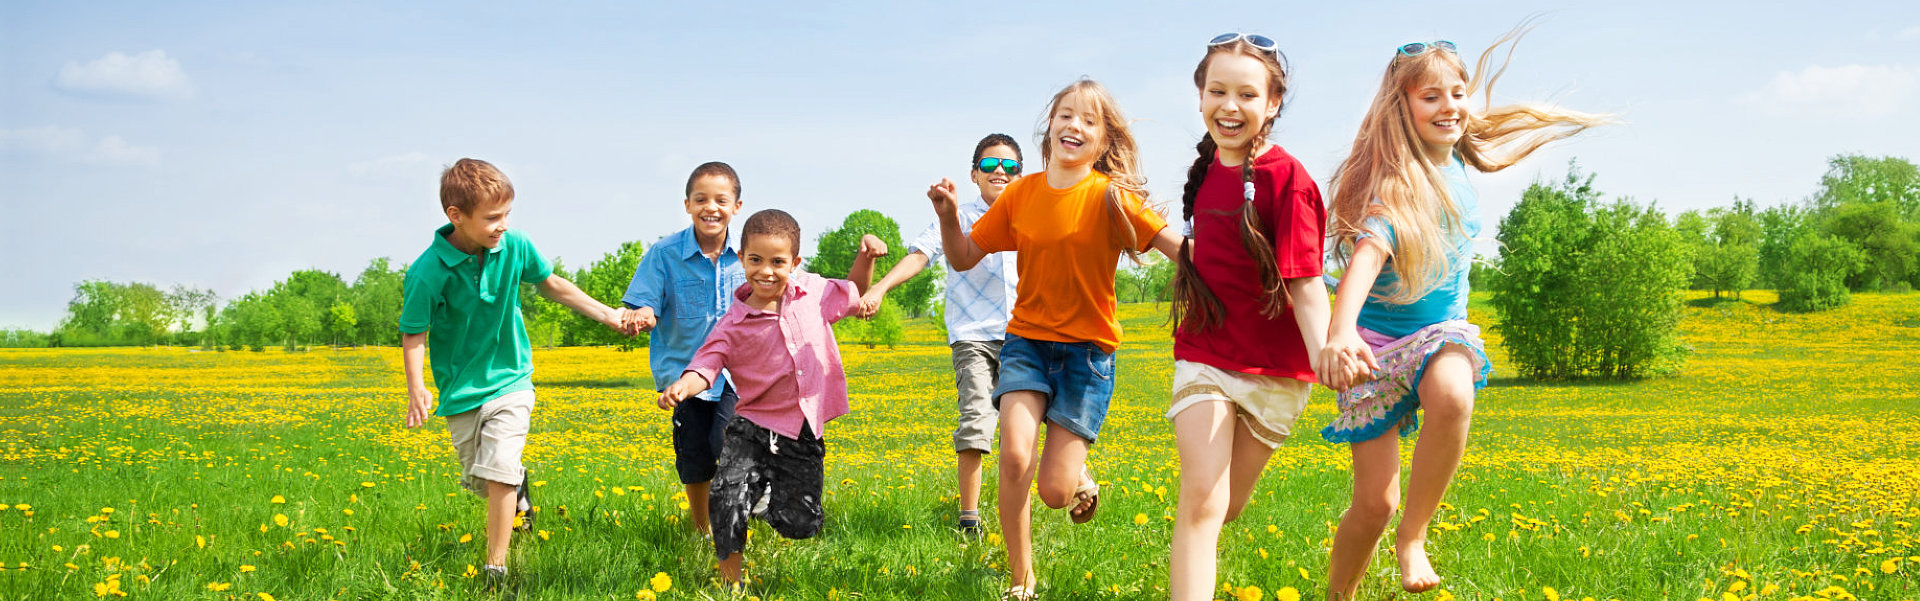 group of kids running in the dandelion spring field